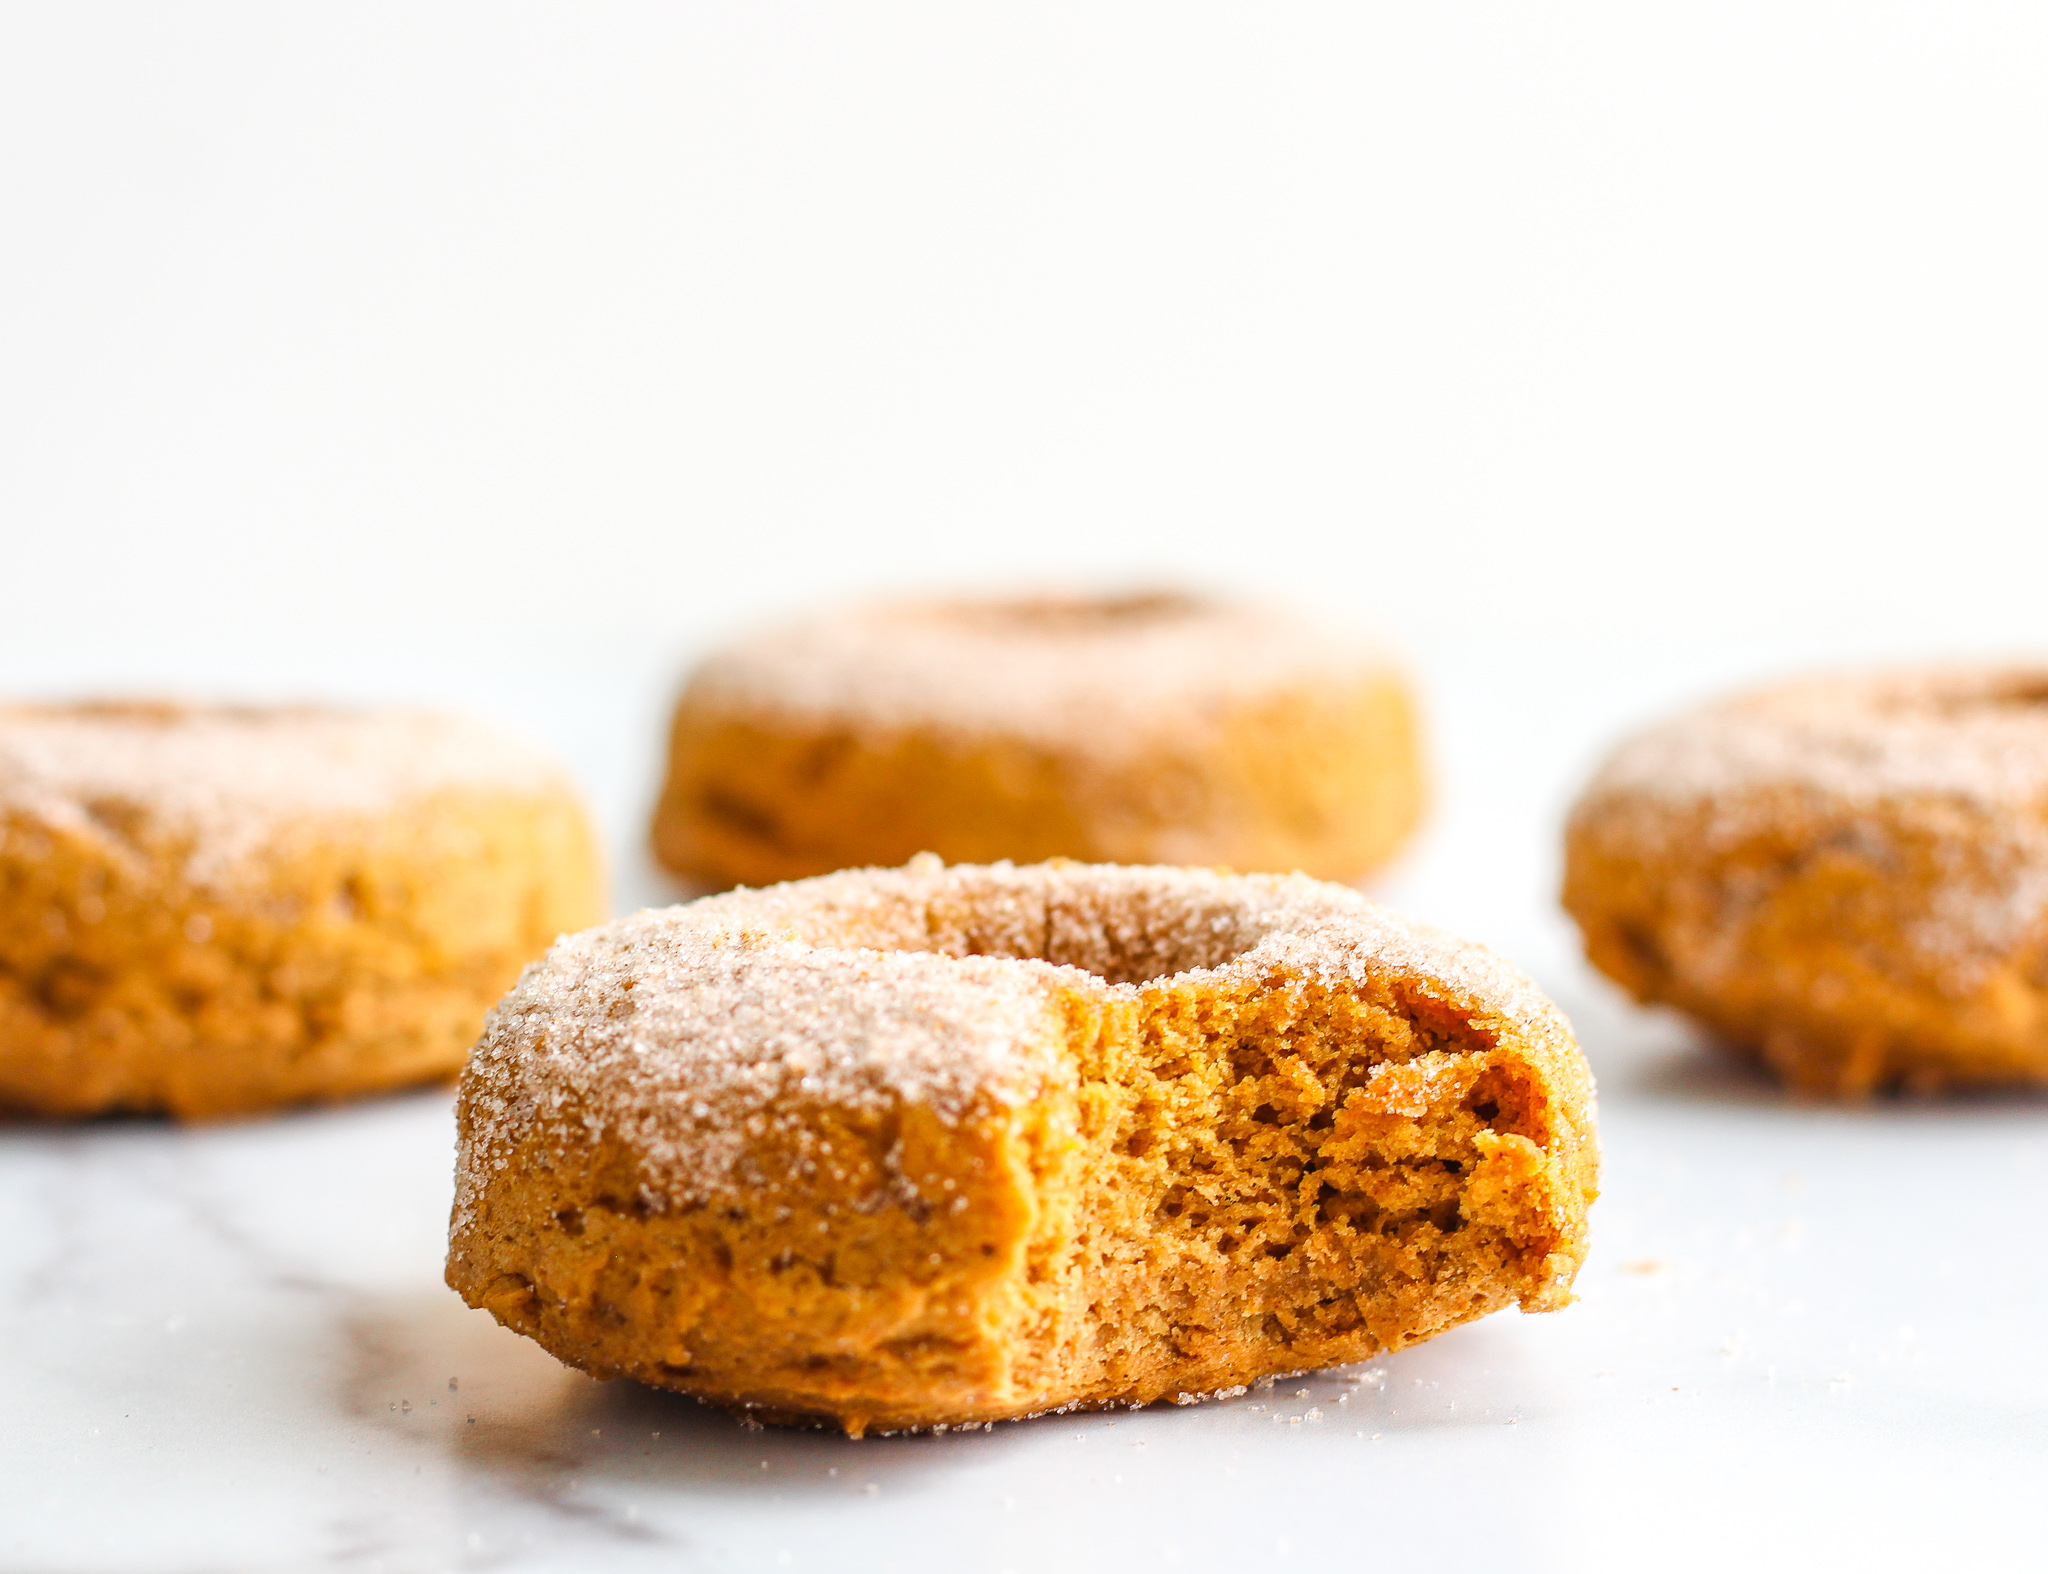 Gluten Free Pumpkin Spiced Donut with a bite taken out of it